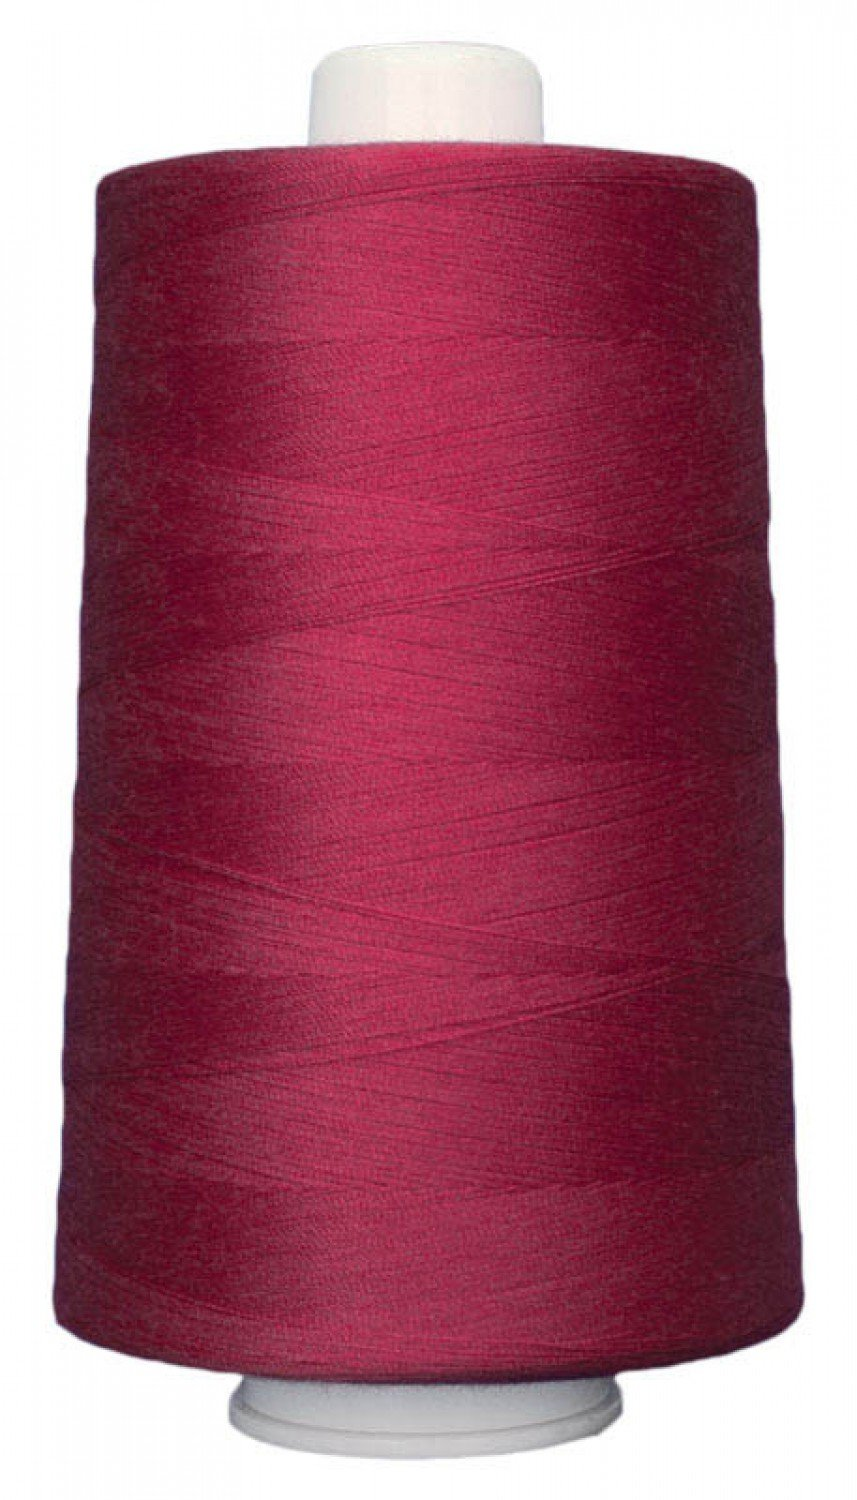 OMNI Polyester Thread 40 wt  6000 yds 3161 Begonia by Superior